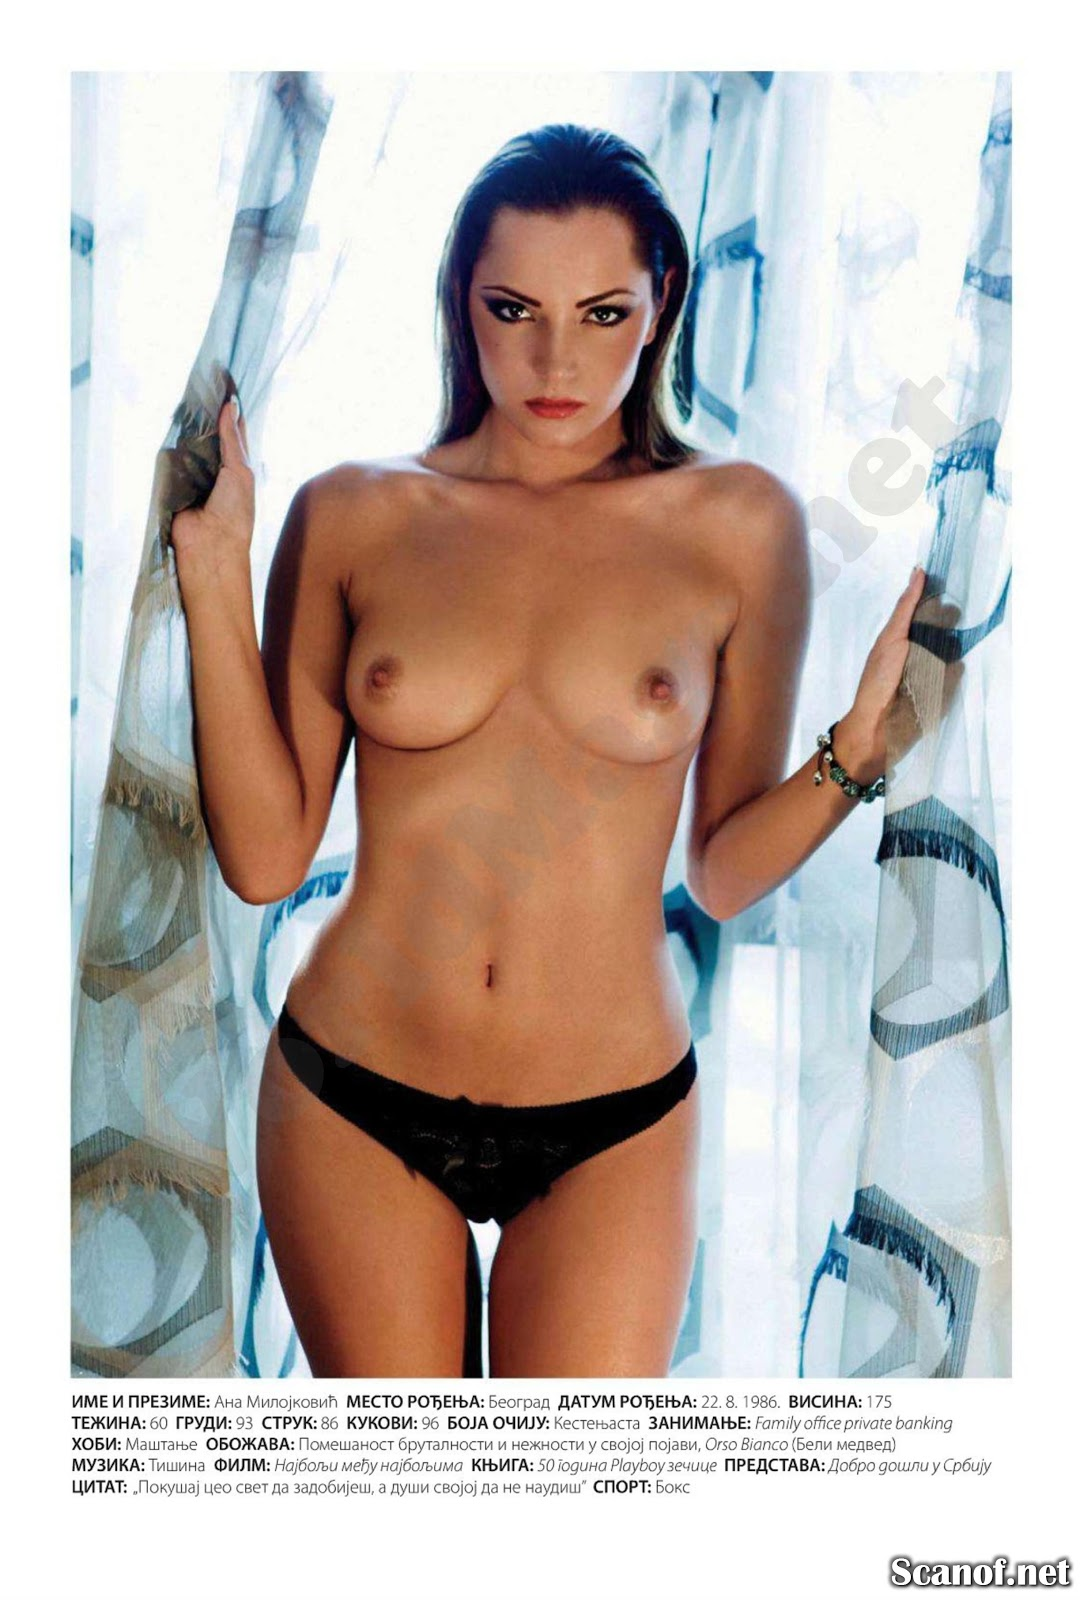 Porn Tania Cagnotto naked (49 photo), Topless, Paparazzi, Boobs, braless 2019